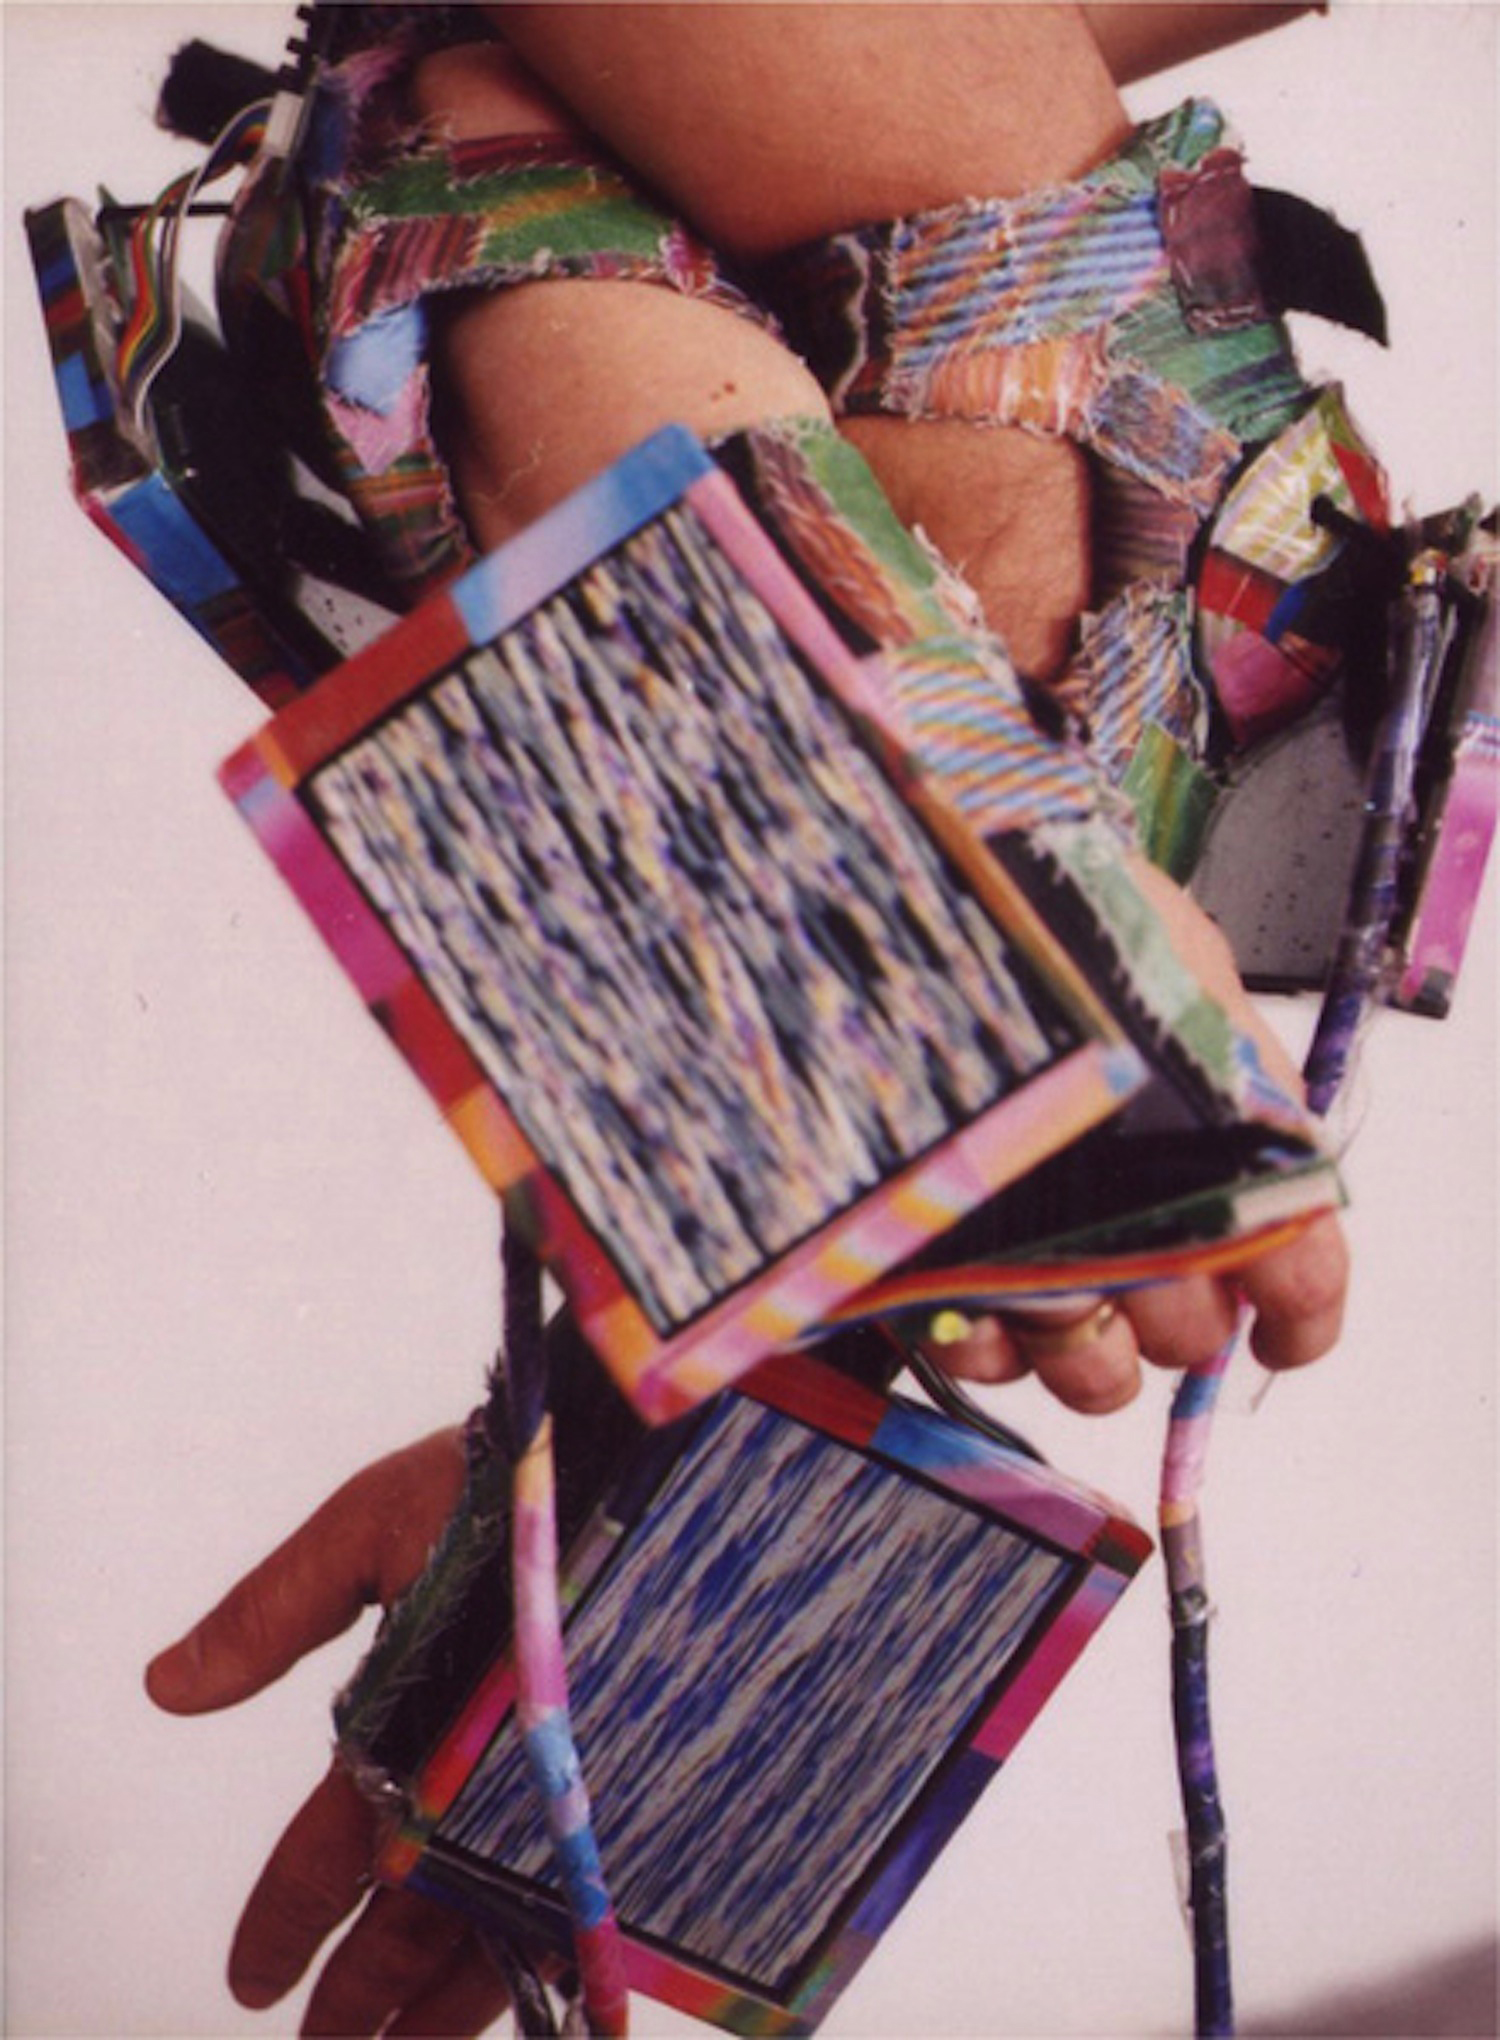 Hands bound together by fabric cuffs with screens dangling on each end.